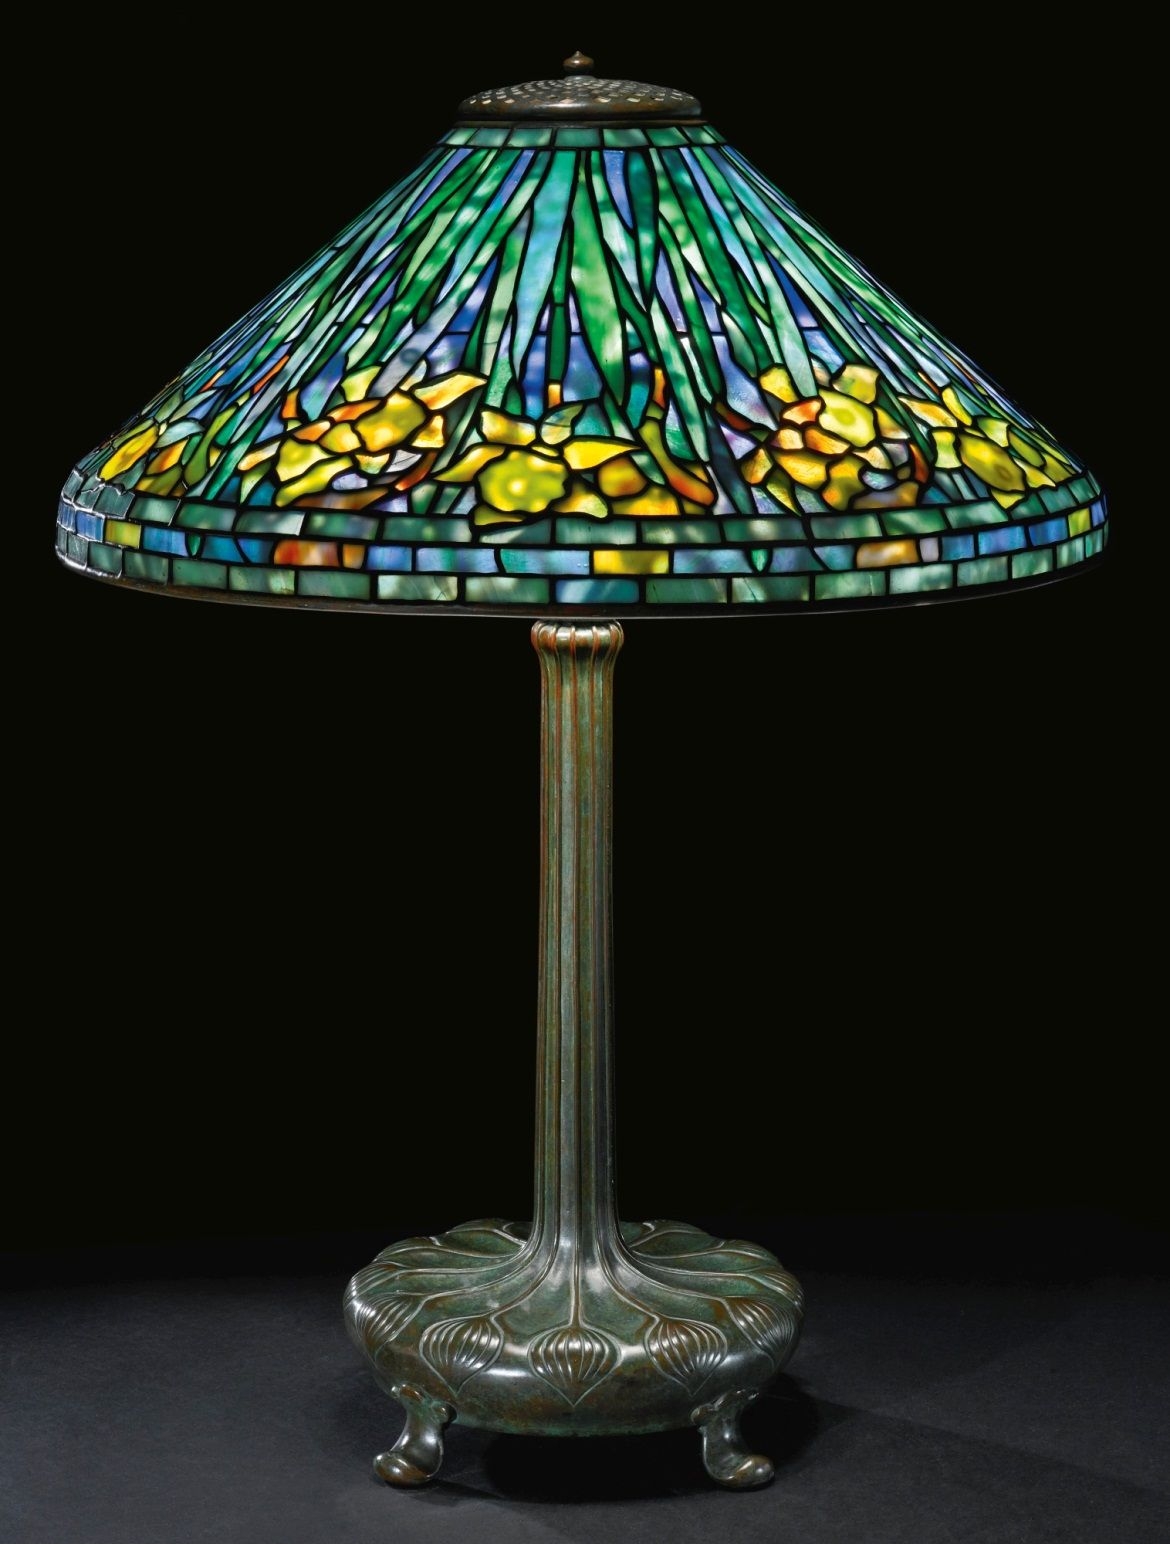 ** Tiffany Studios, New York, Favrile Leaded Glass and